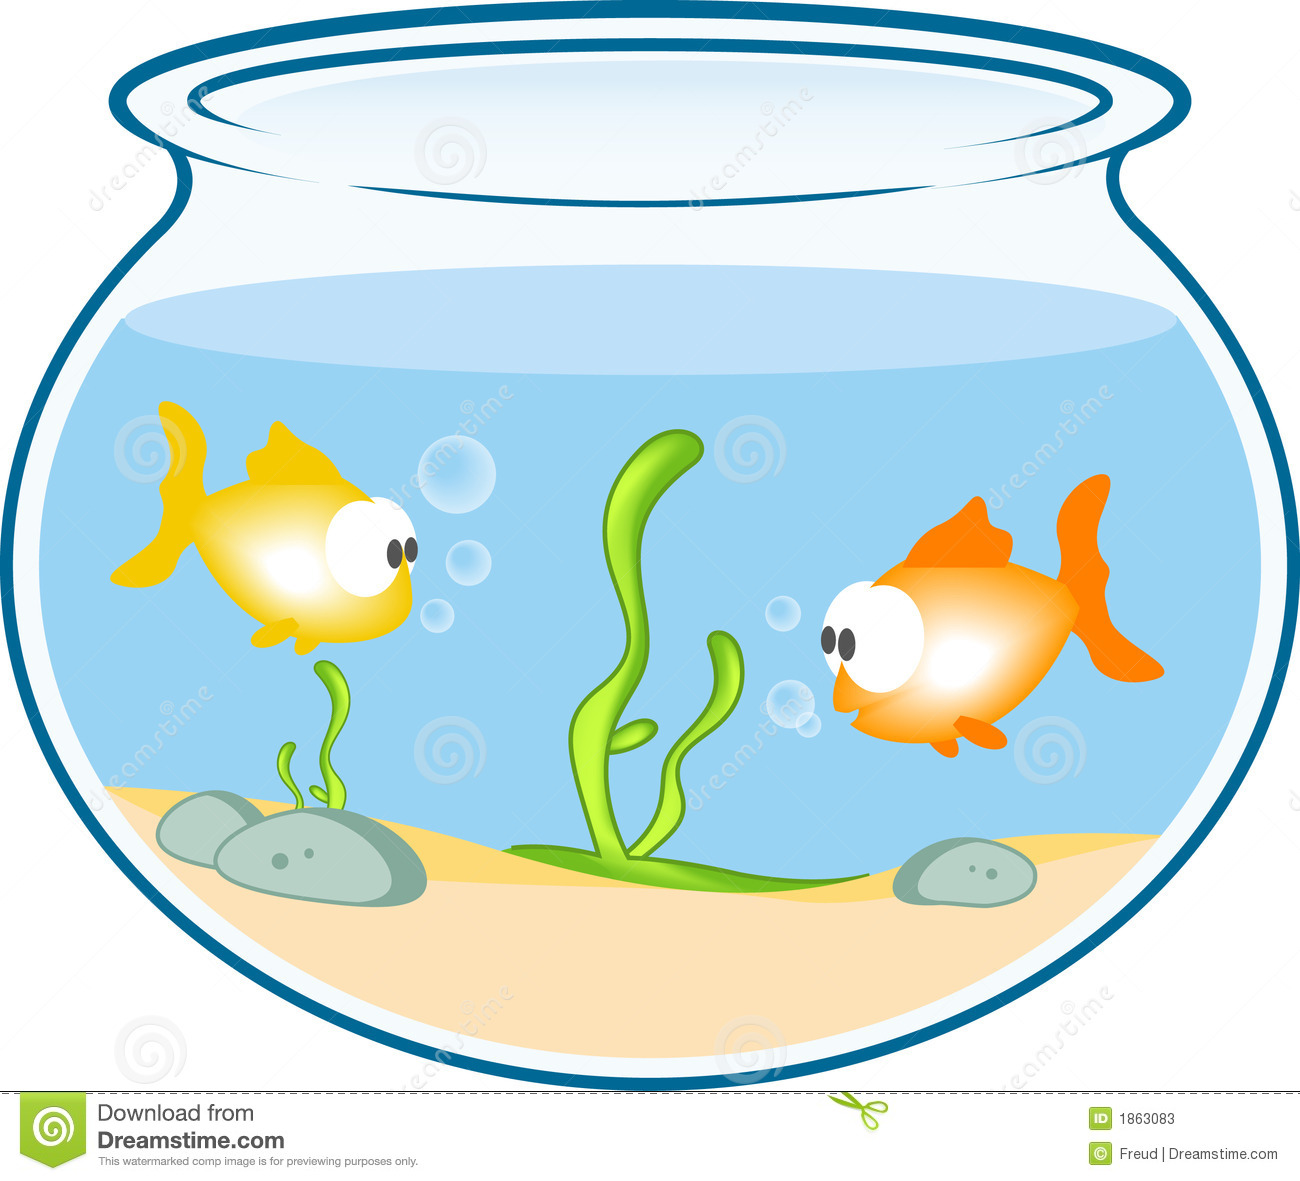 fish tank clipart at getdrawings com free for personal Dr. Seuss Red Fish Blue Fish Clip Art Dr. Seuss Red Fish Blue Fish Clip Art